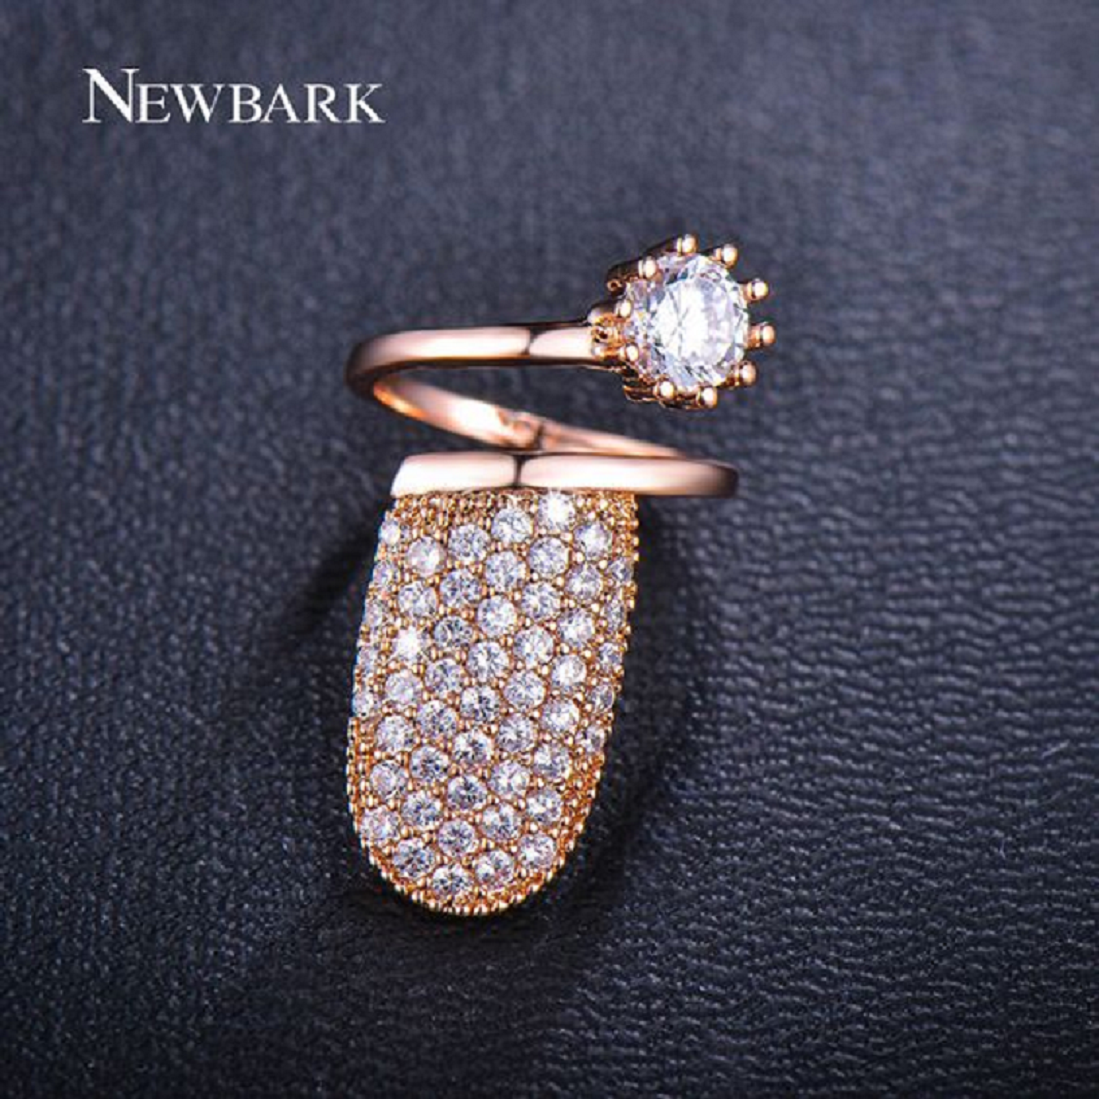 Nail ring bling Cuticle Hugging Gold Nail Ring with Diamond and Rhinestones